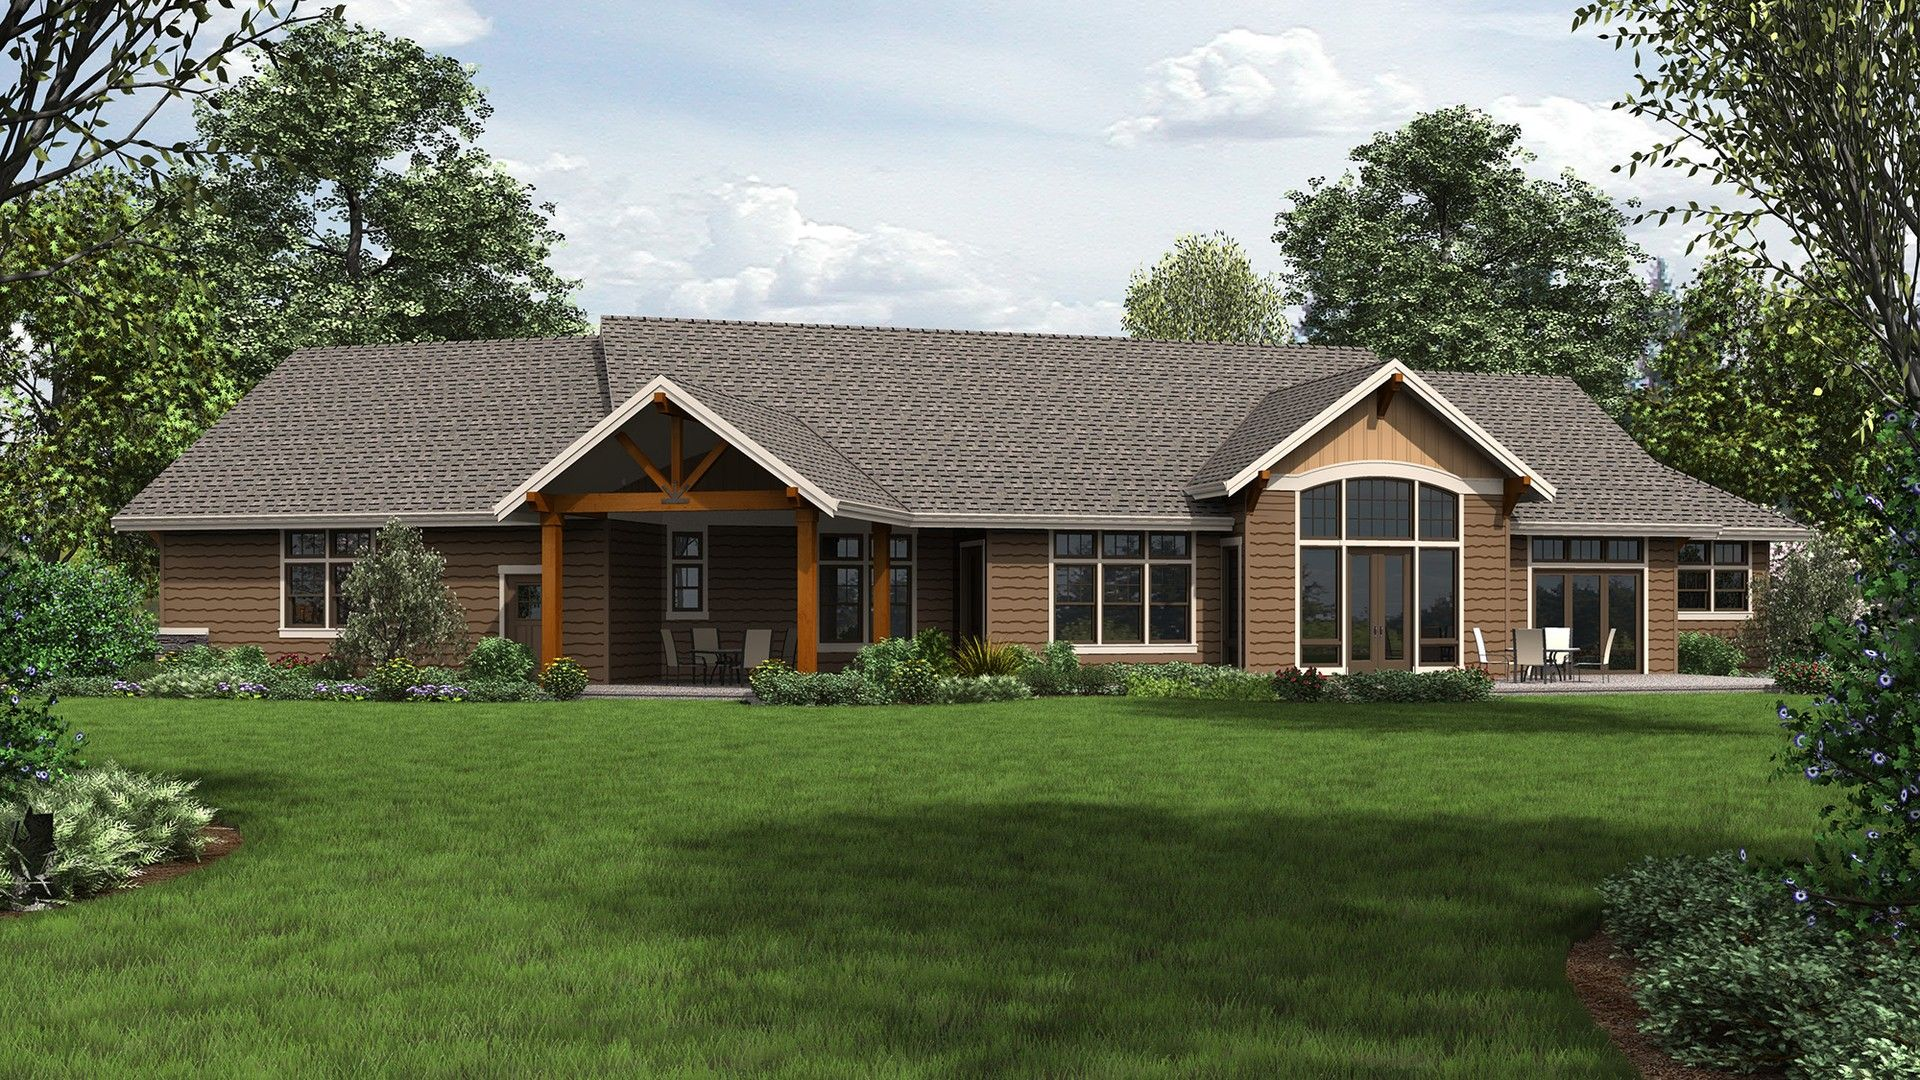 Craftsman House Plan B1250 The 2916 Sqft 3 Beds 3 Baths